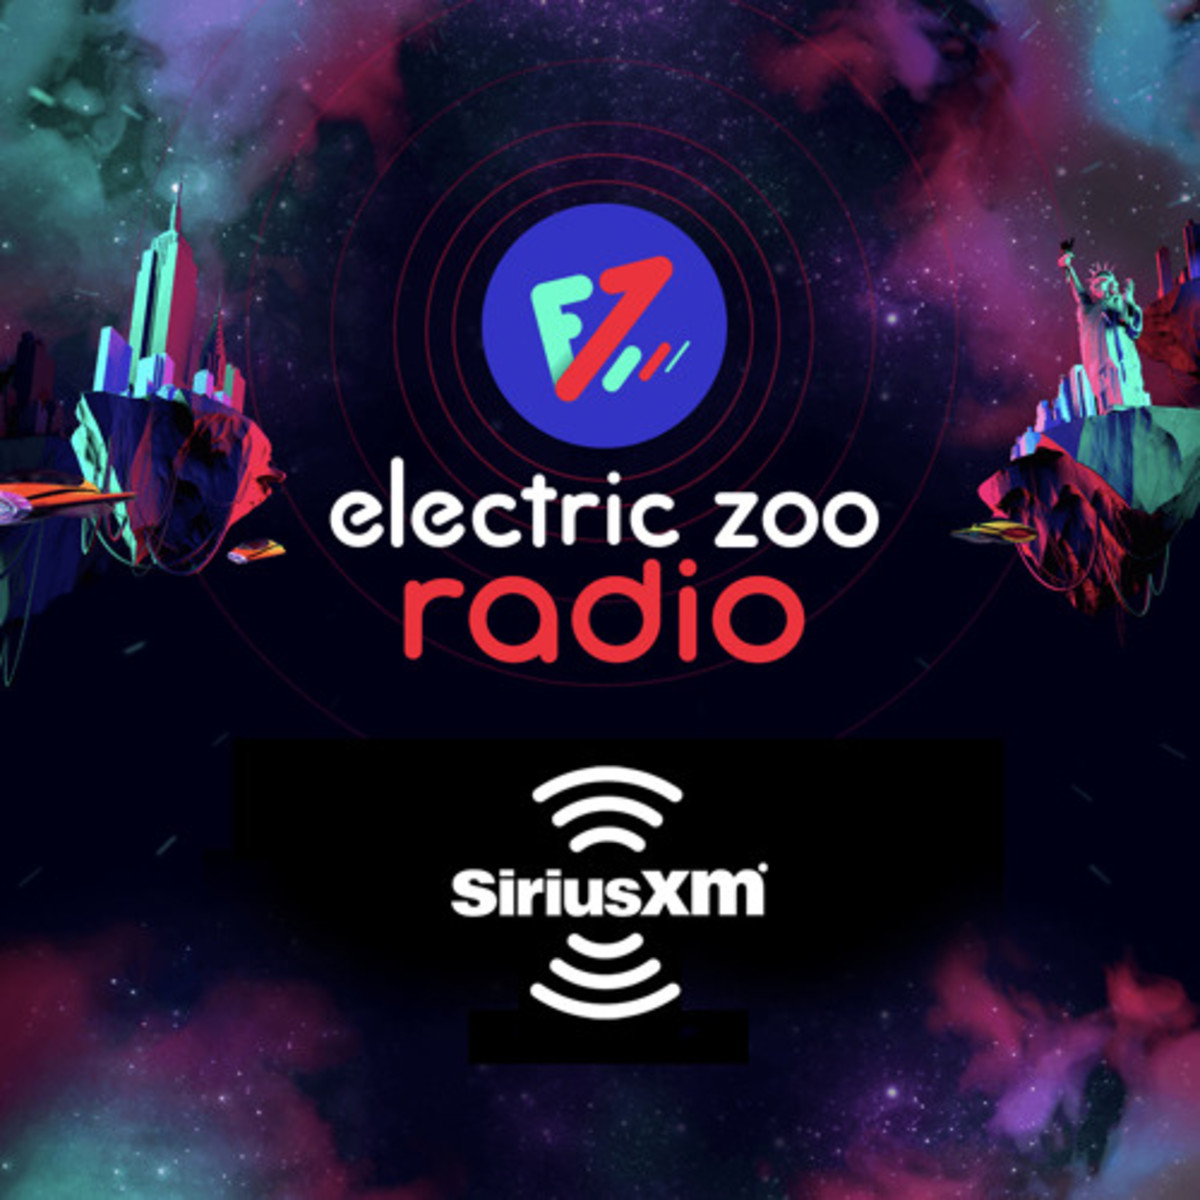 Electric Zoo Radio on SiriusXM